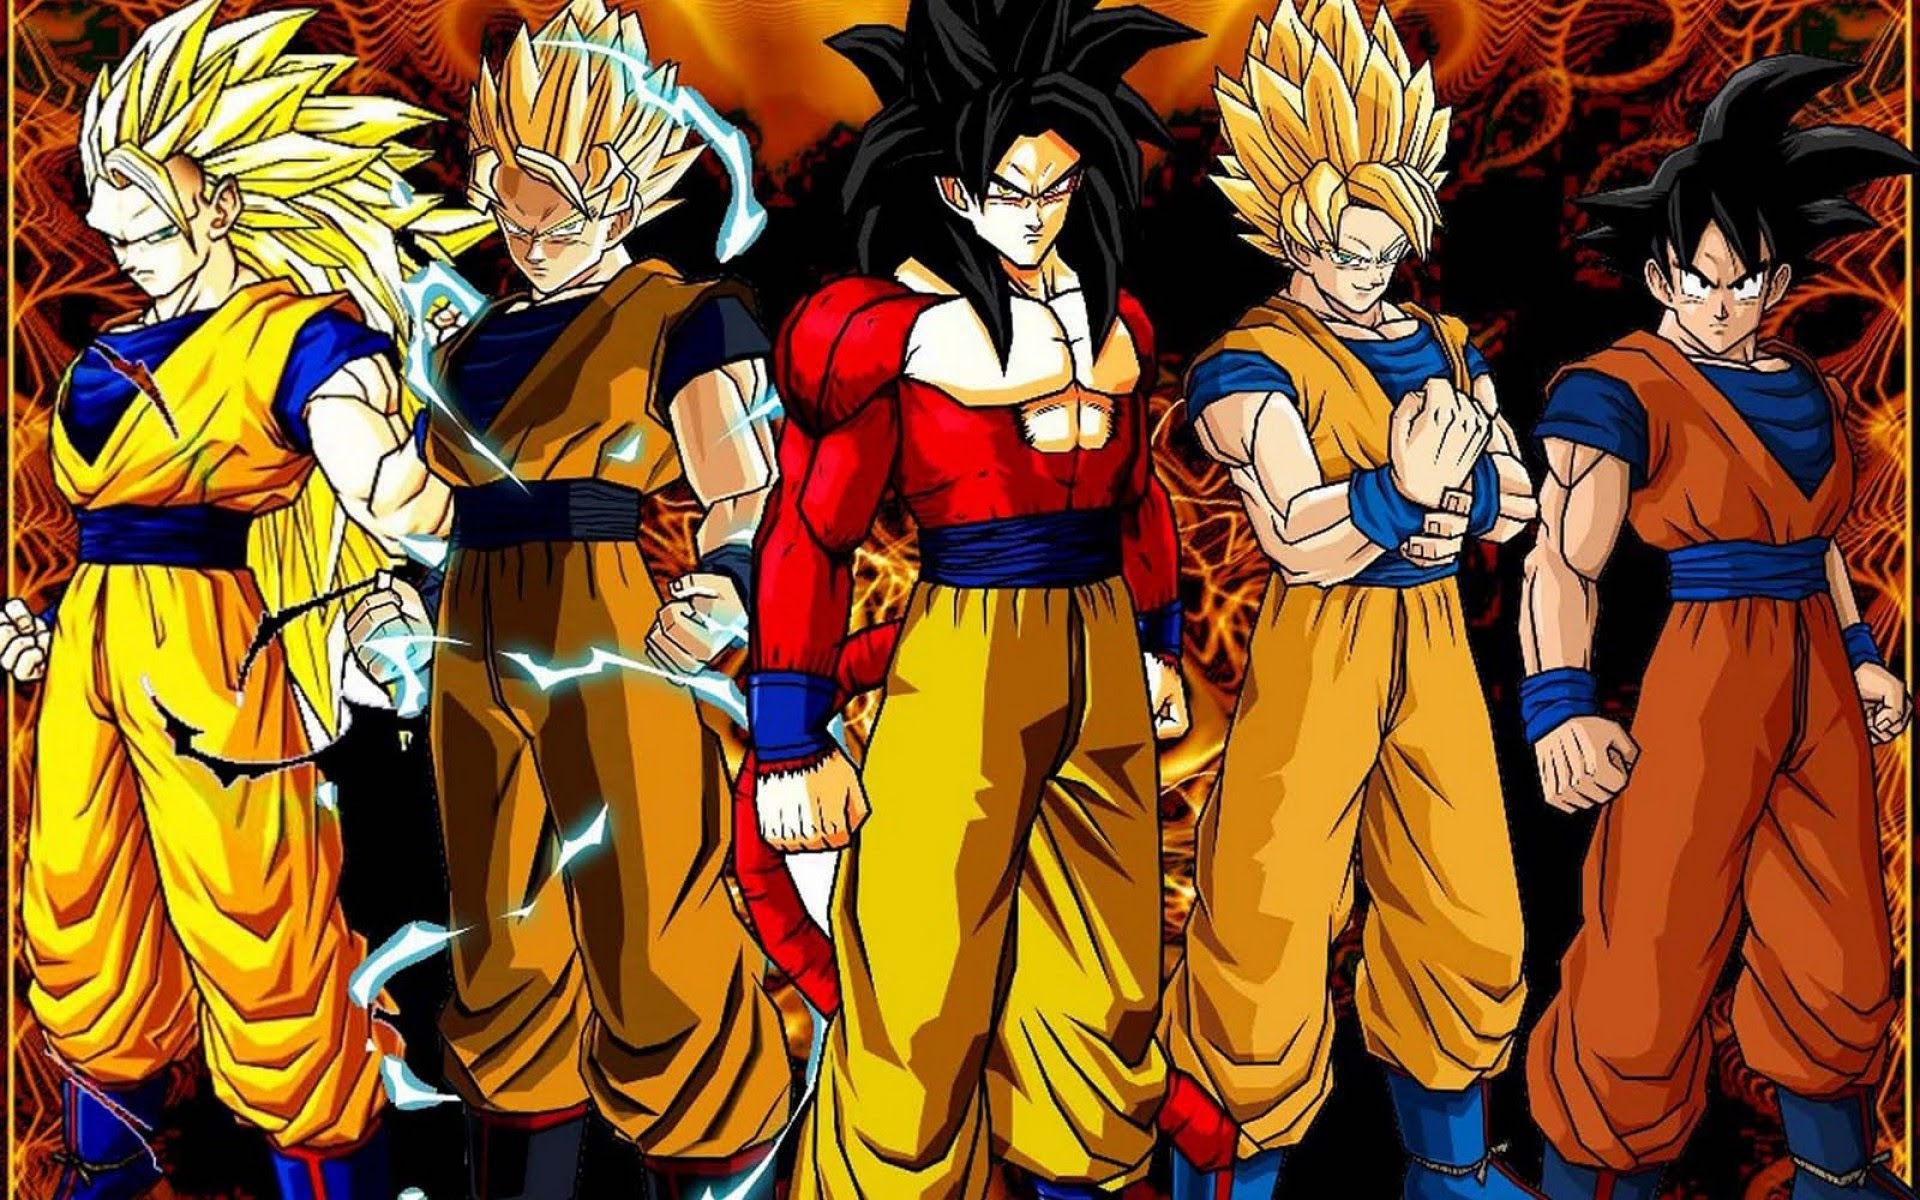 Dbz Wallpapers Hd All Saiyans 61 Images